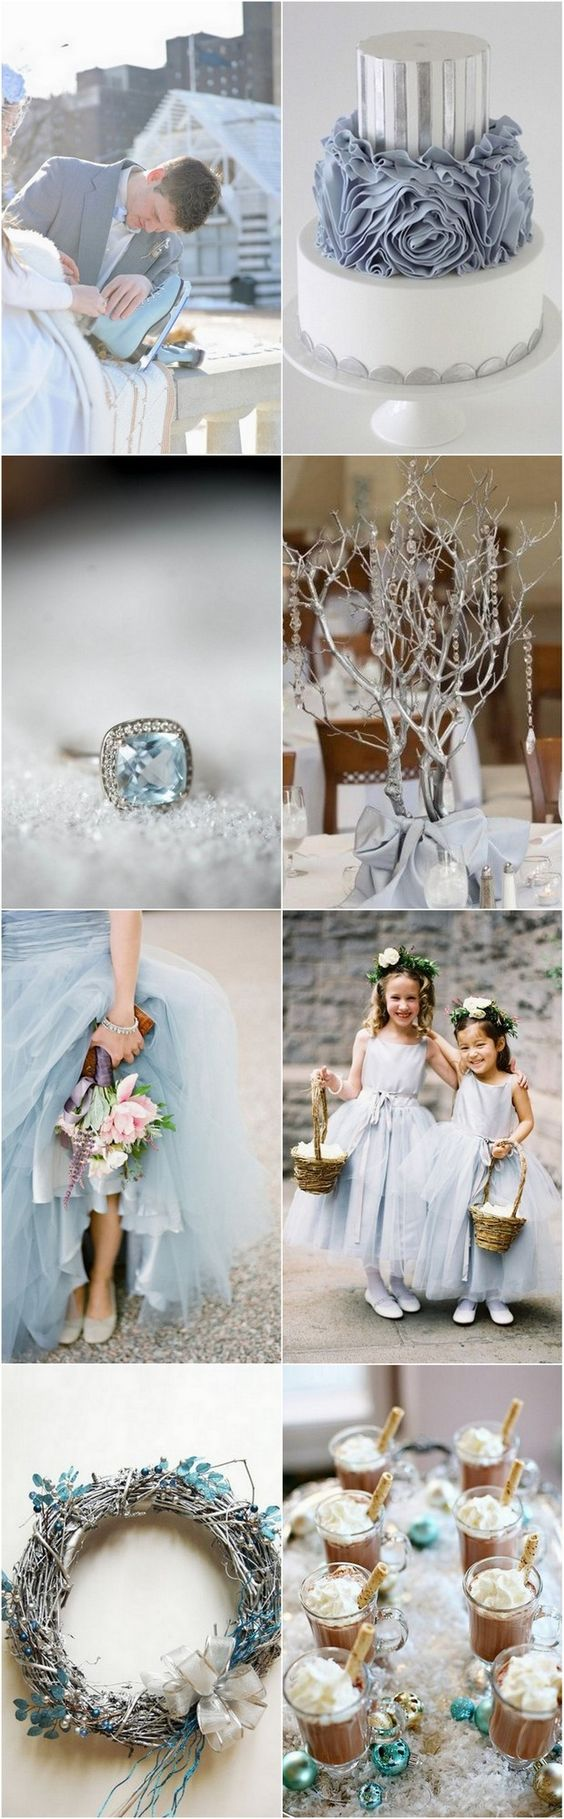 Winter Wonderland - Ice Blue & Silver Wedding Palette | weddingsonline